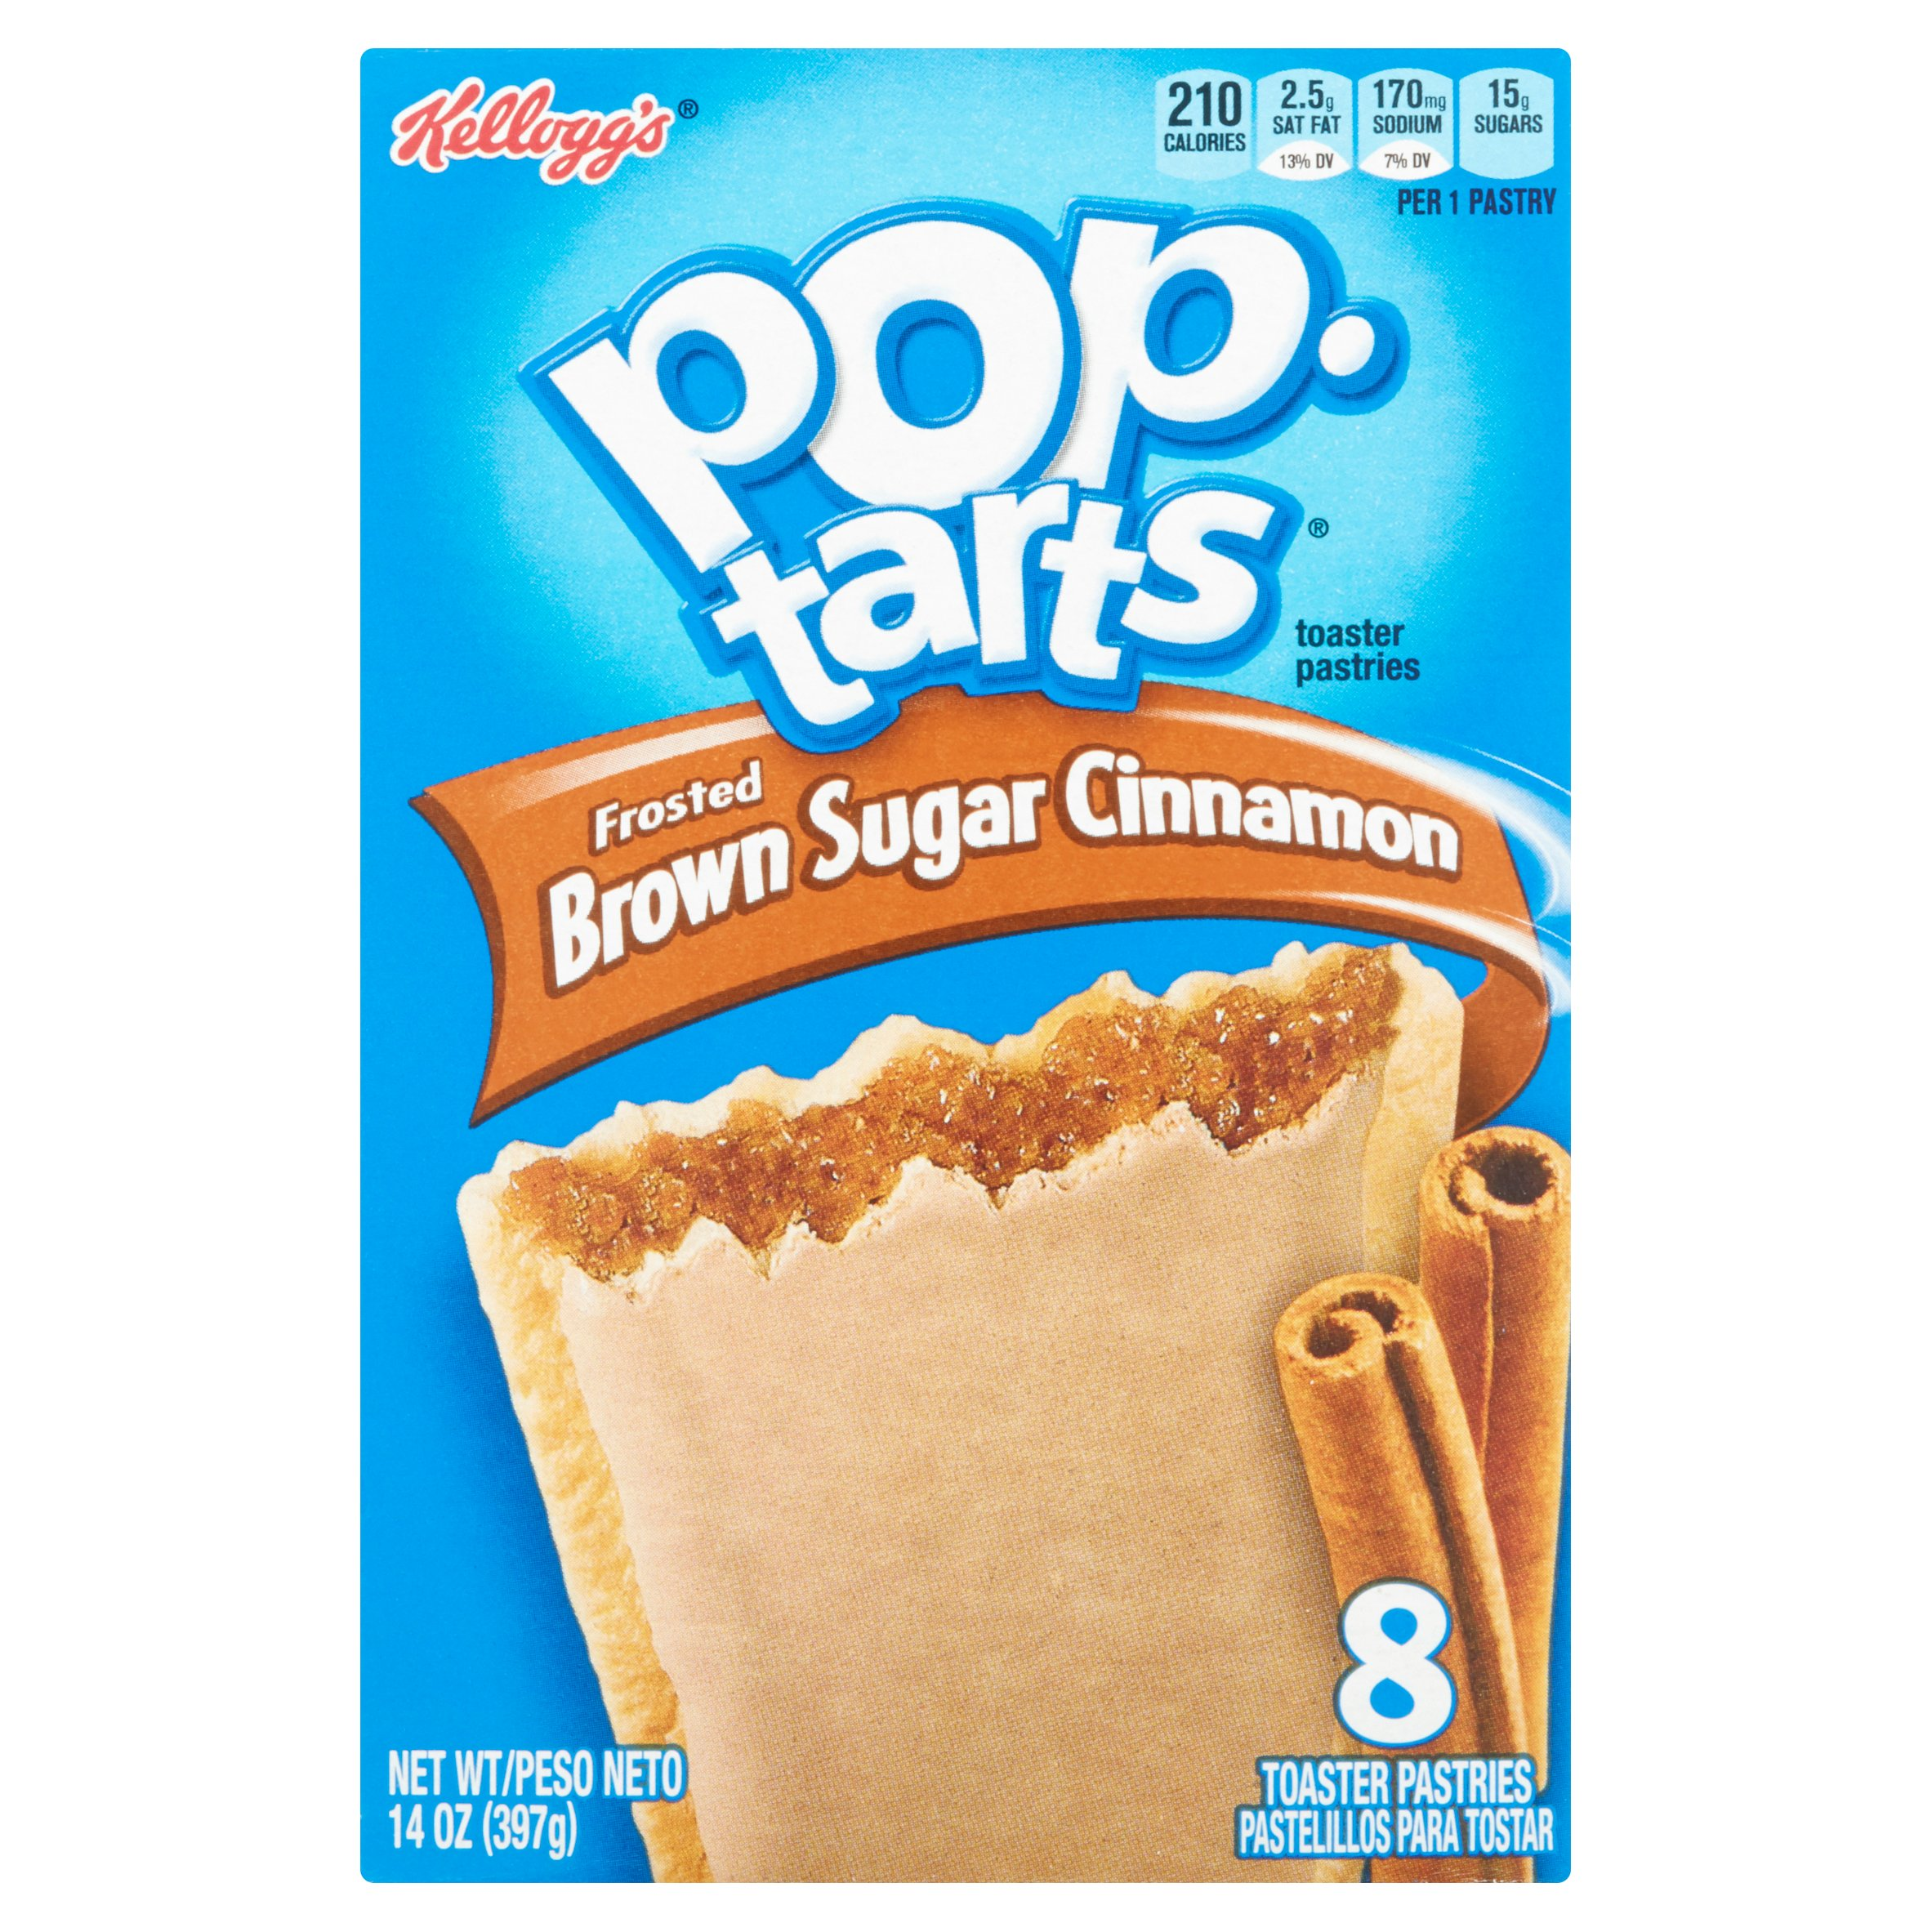 Kellogg's Pop Tarts Frosted Brown Sugar Cinnamon Toaster Pastries, 8 count, 14 oz, 12 pack by Kellogg Sales Co.